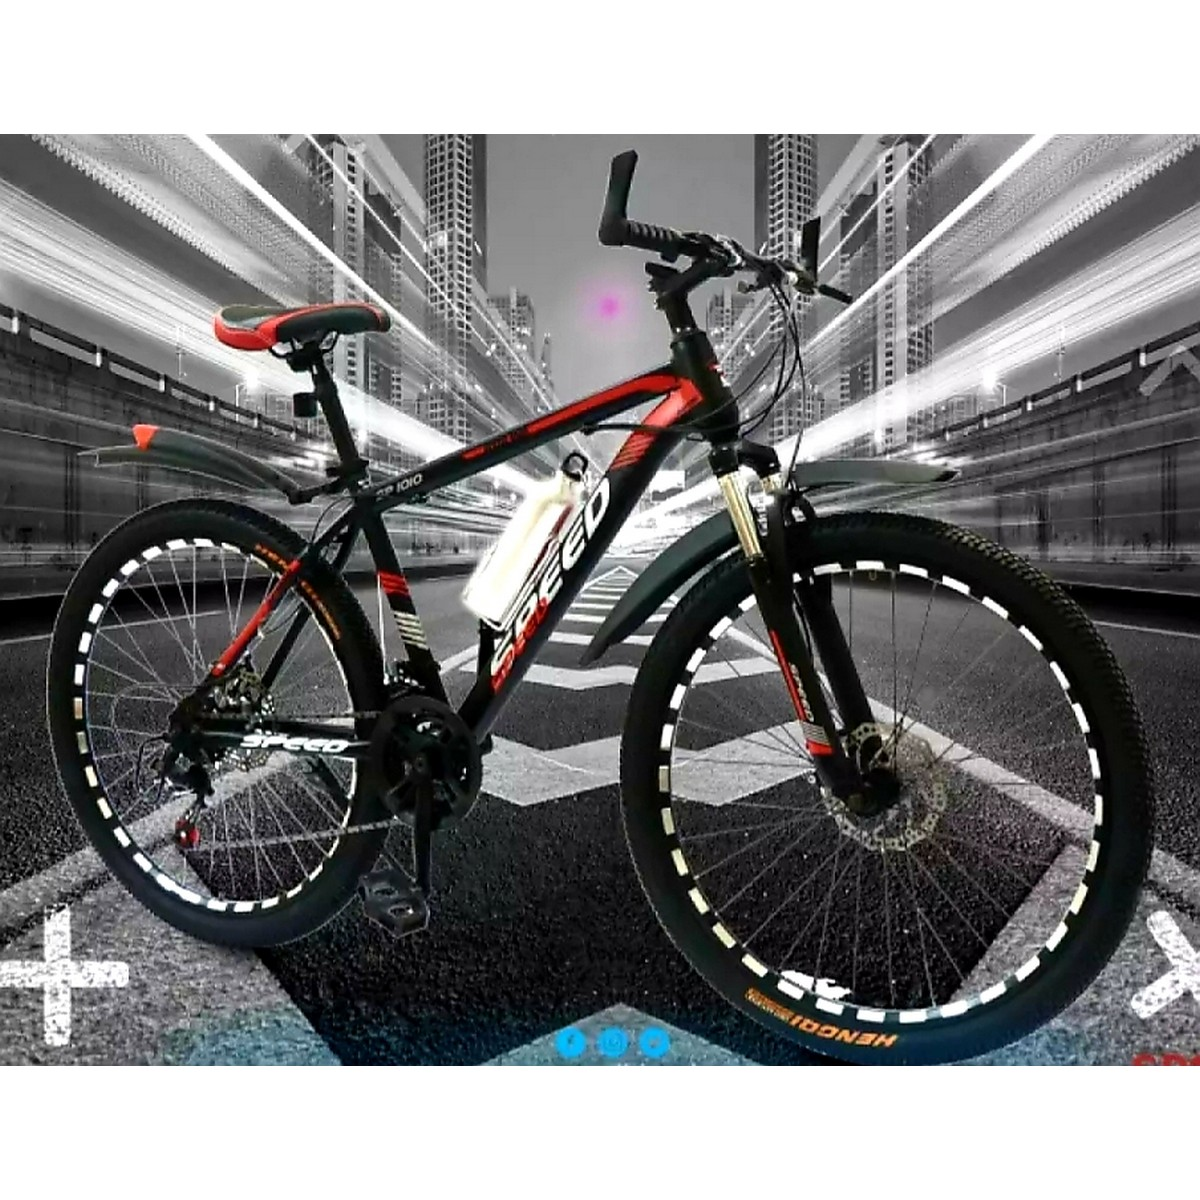 Speed Bicycle 26 inches Adjustable Seat Reflector RIM Hand Safety System and Gear Safety Mountain & Road Bike with Bottle Alloy